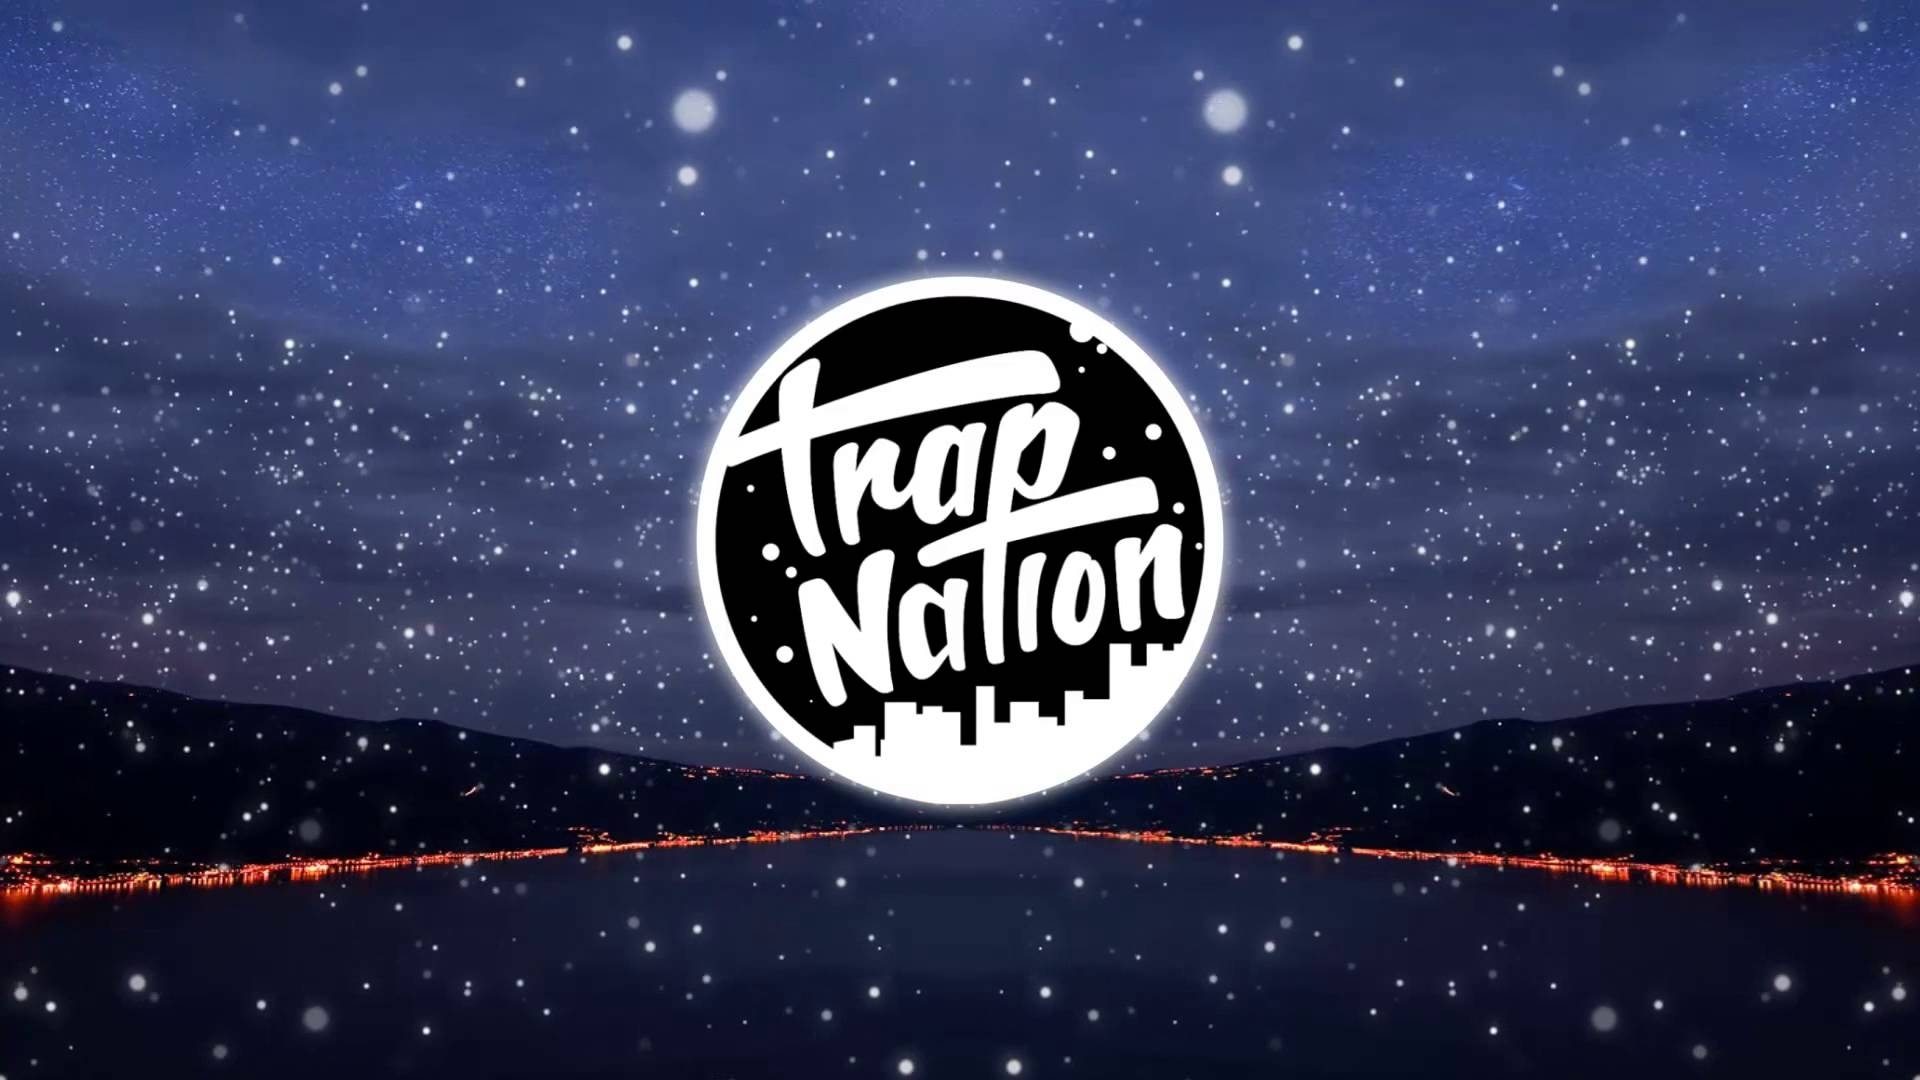 congratulations to trap nation for breaking top 100 youtube channels